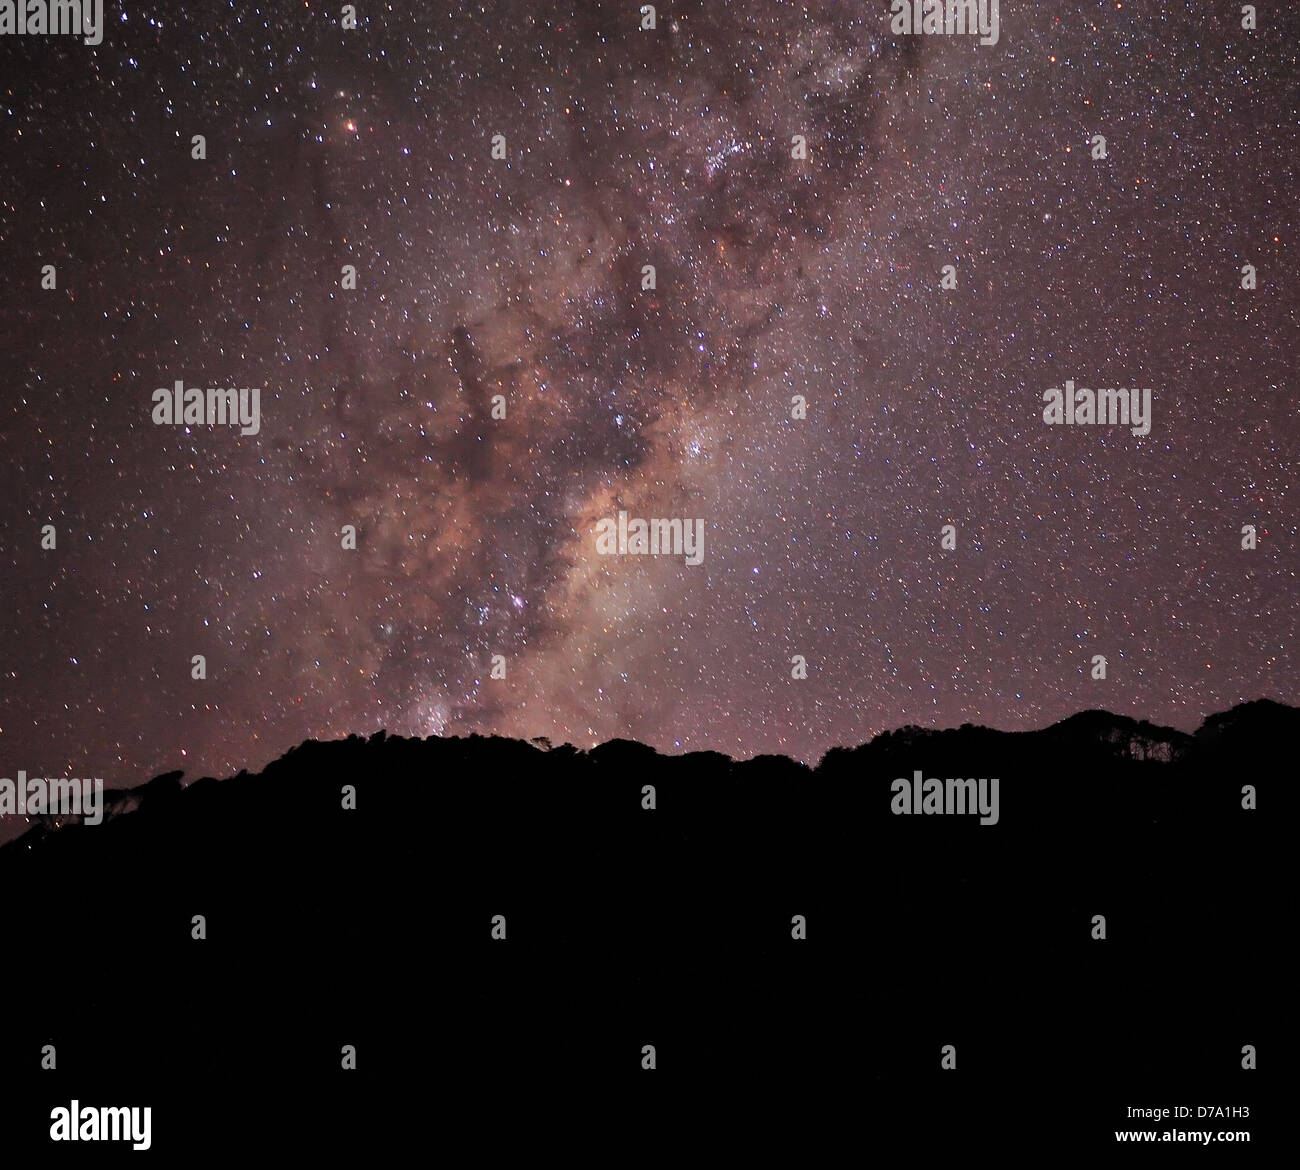 View of Milky Way and millions of stars during night at West Coast region, New Zealand - Stock Image